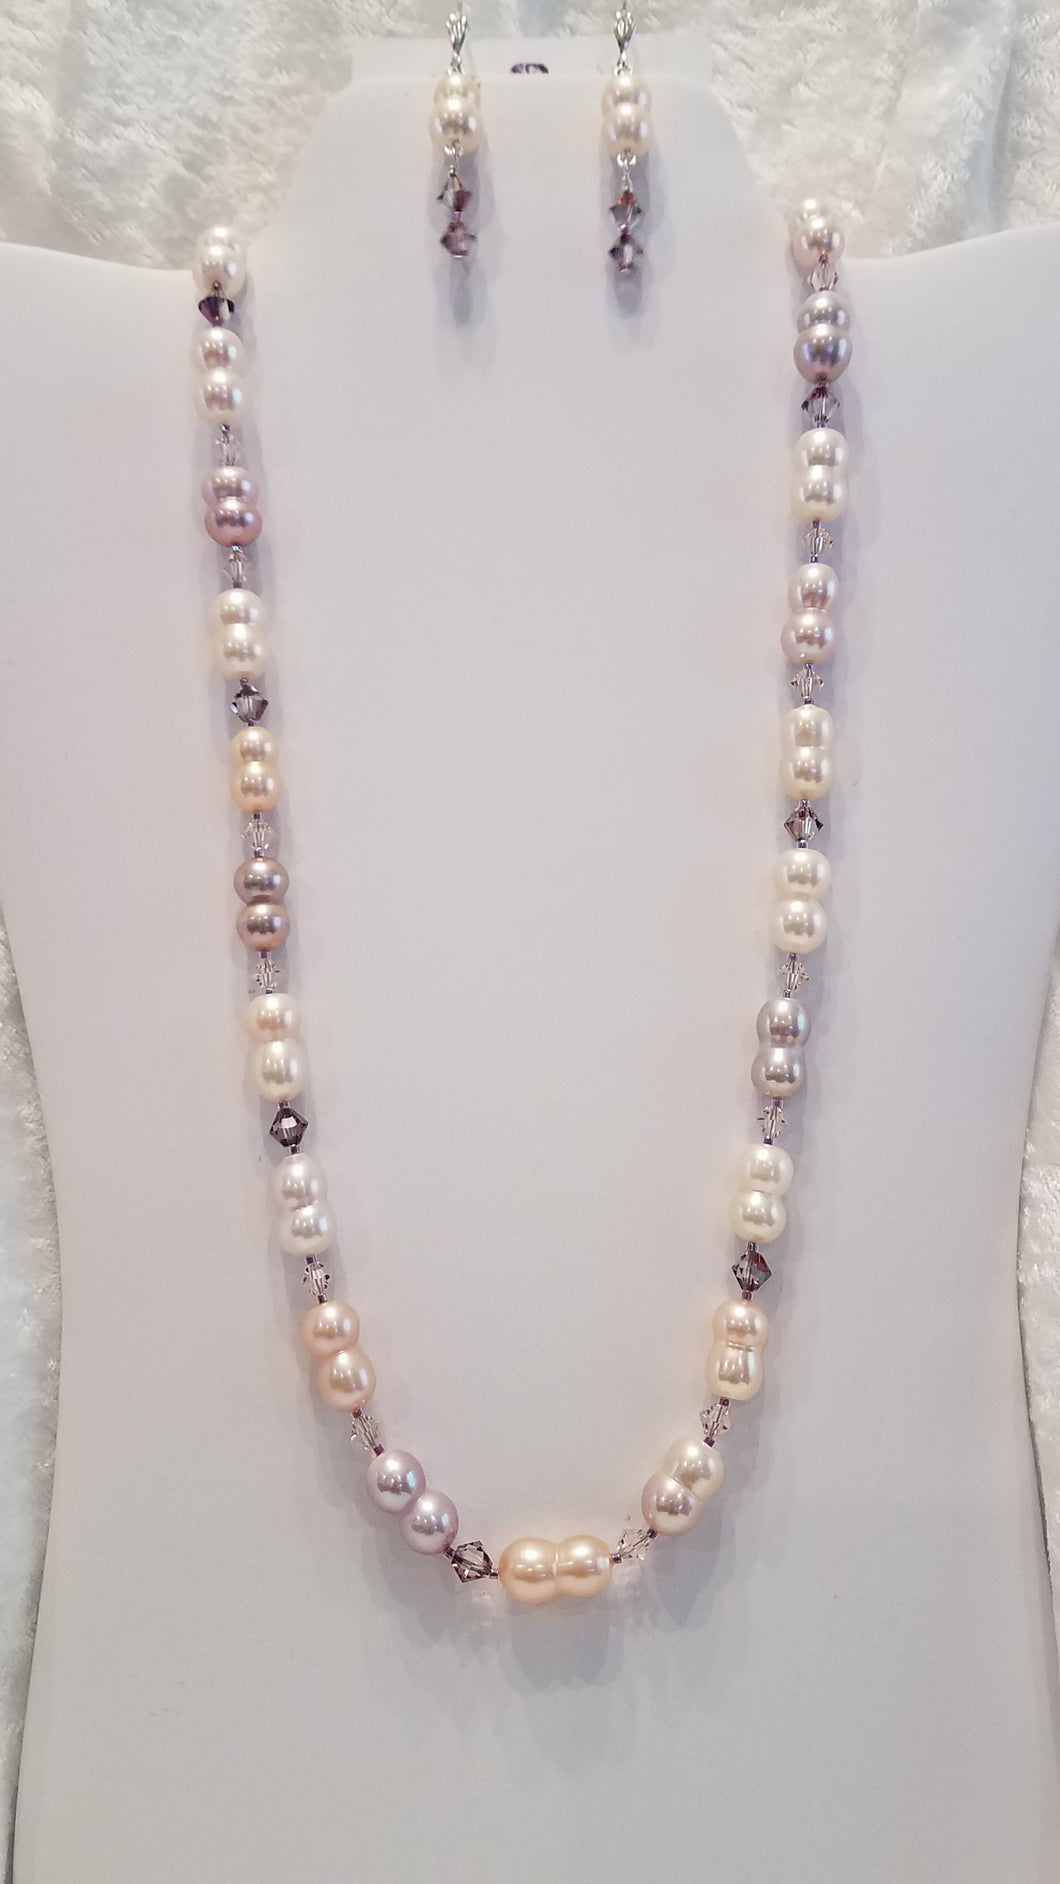 Peanut Freshwater-Pearls-Necklace-Earrings-Pink-Lavender-cream-sterling-silver